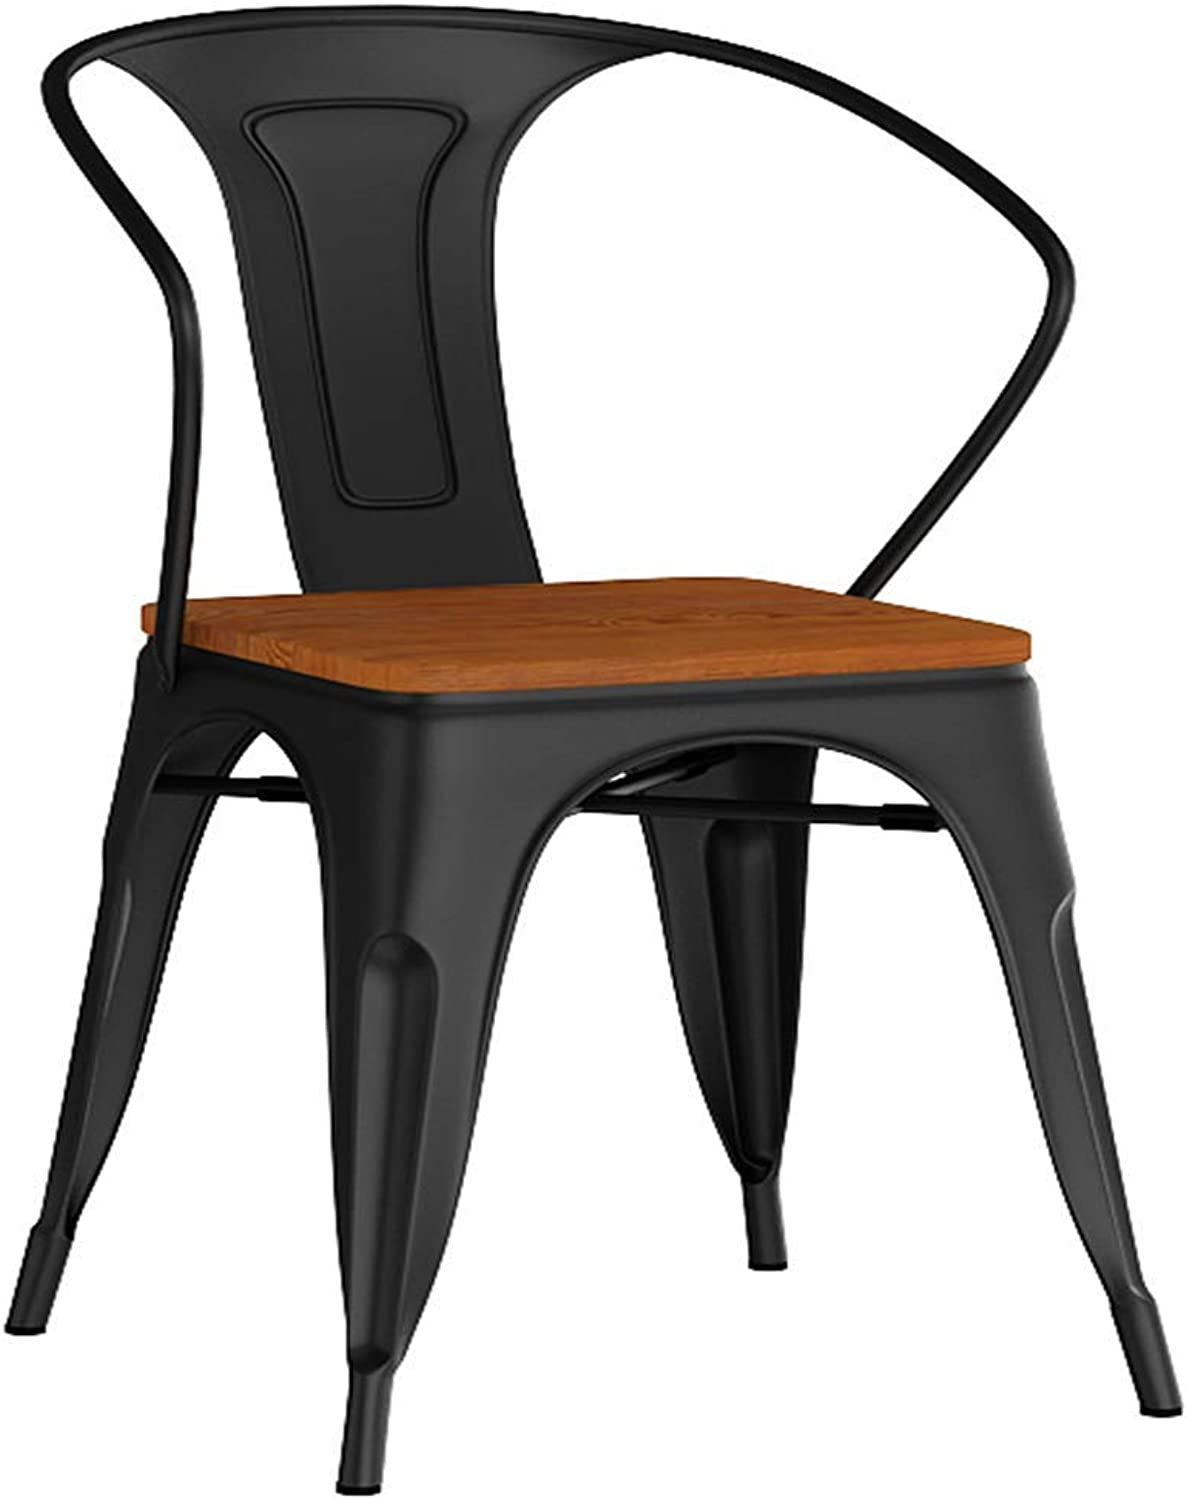 LLYU American Iron Dining Chair Single Stool Backrest Lounge Chair Coffee Chair Simple Office Conference Chair Computer Chair